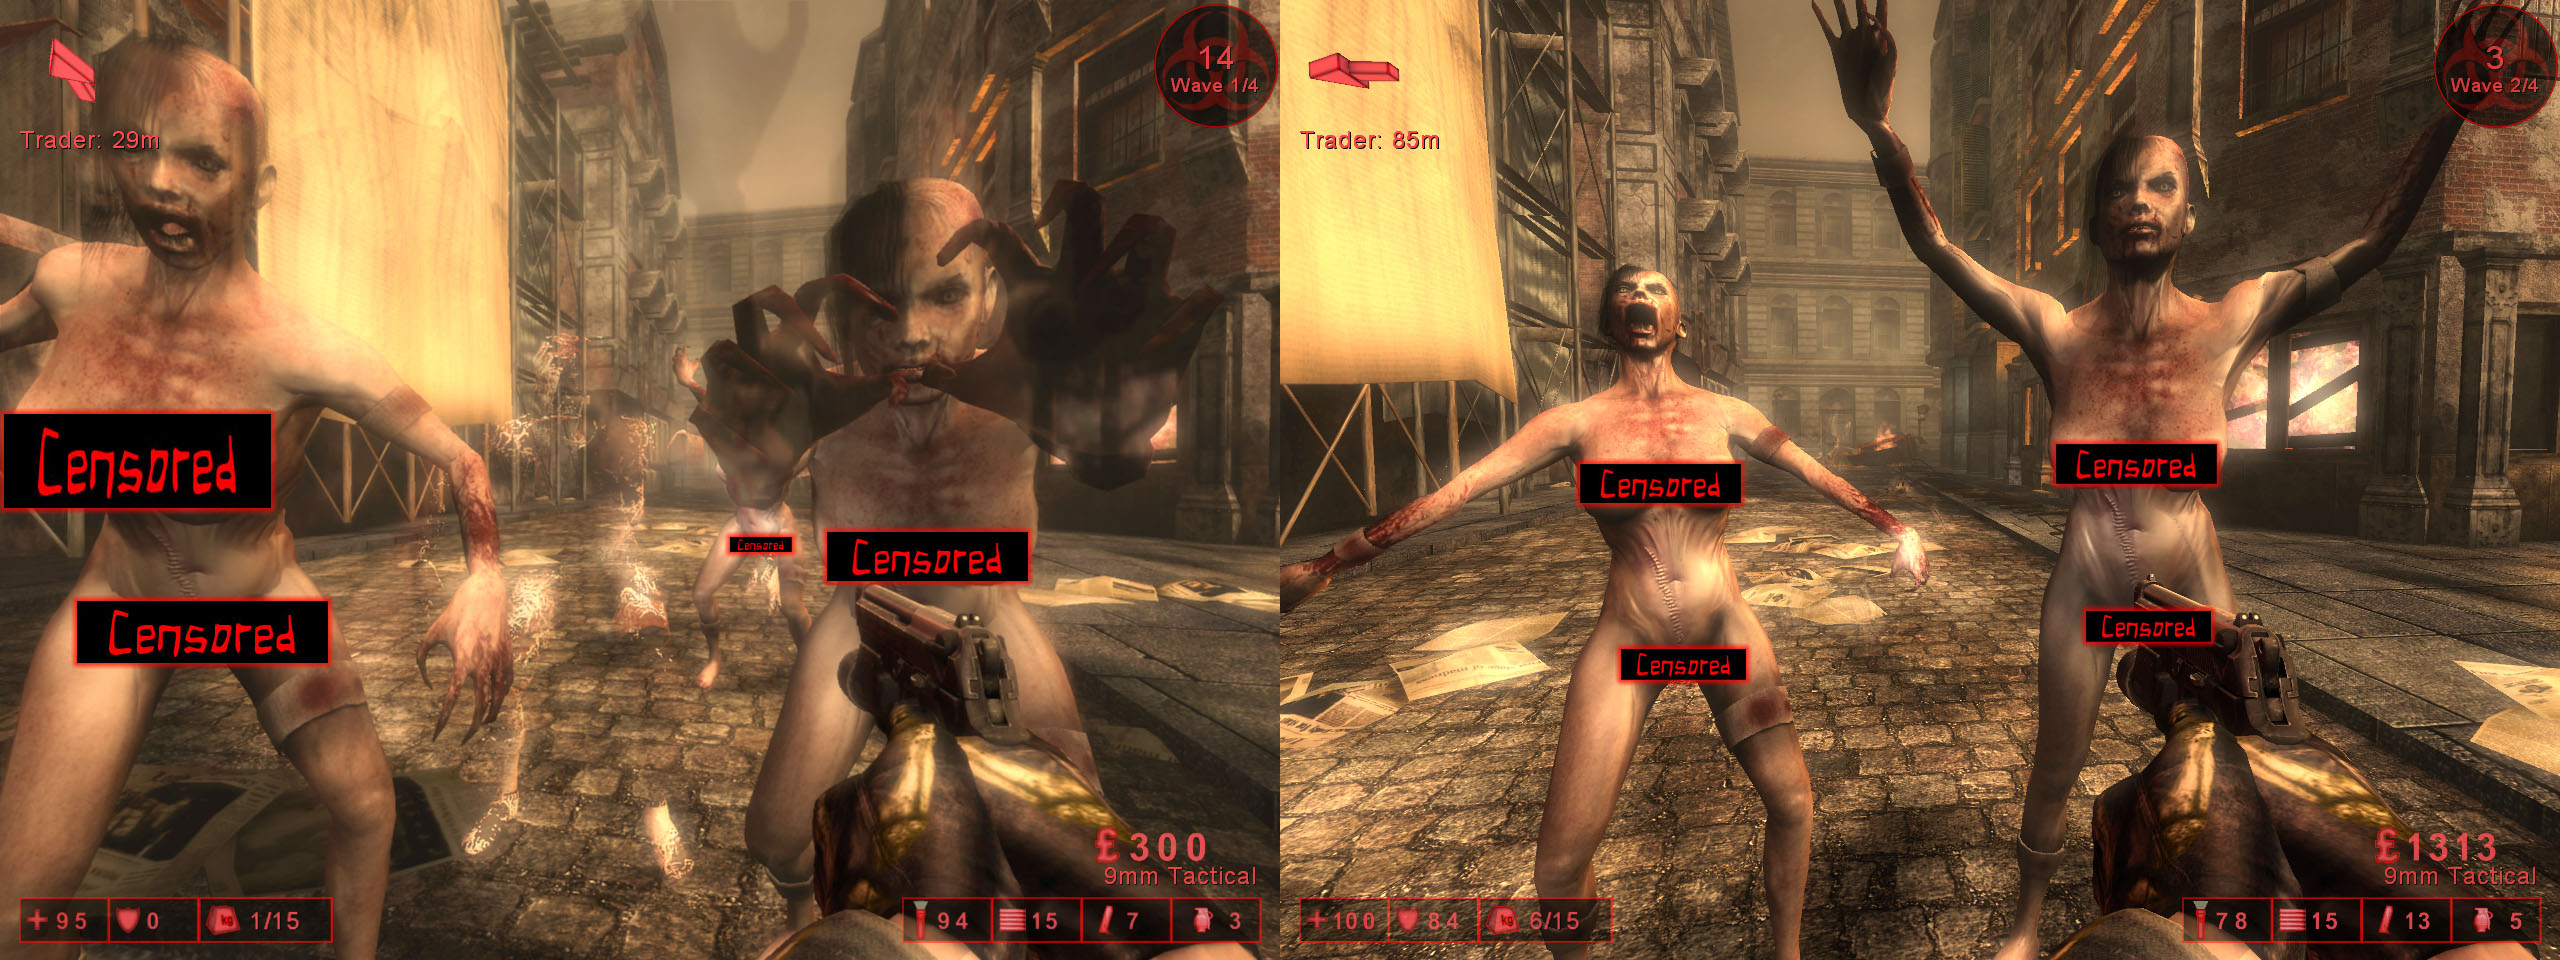 Ut 3 nude mode sex photo